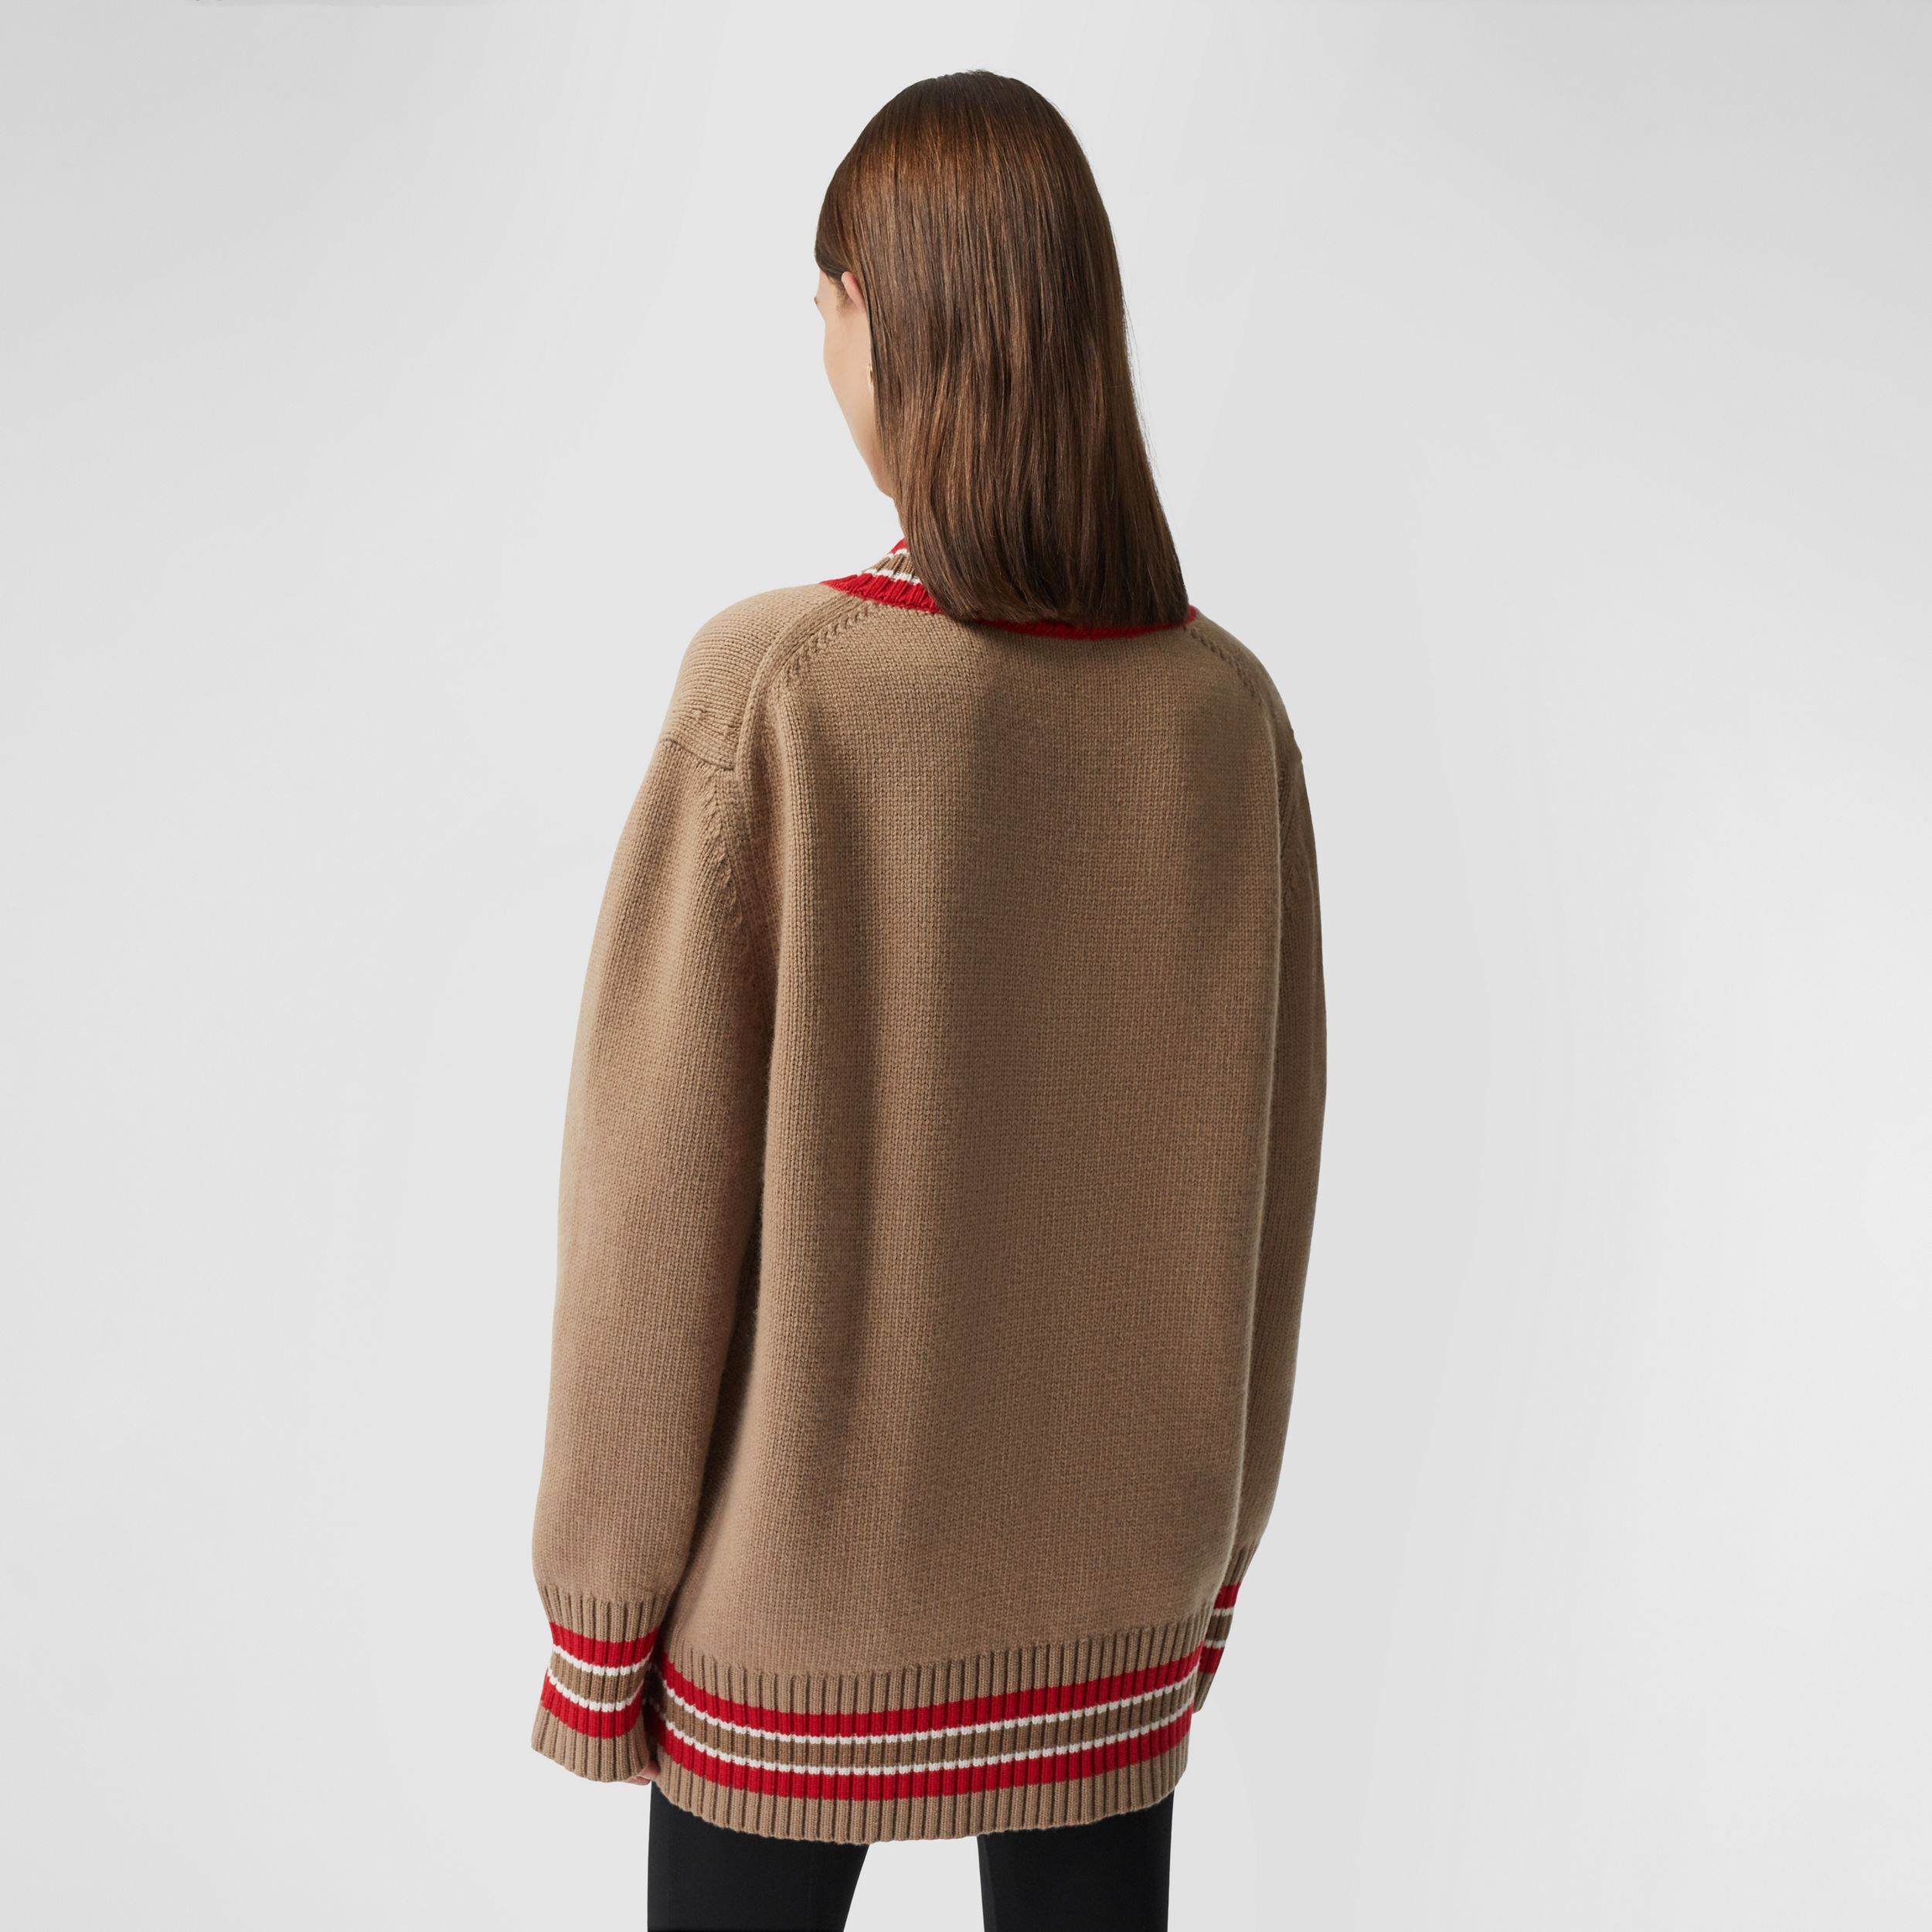 Wool Oversized Cricket Sweater in Camel - Women | Burberry - 3